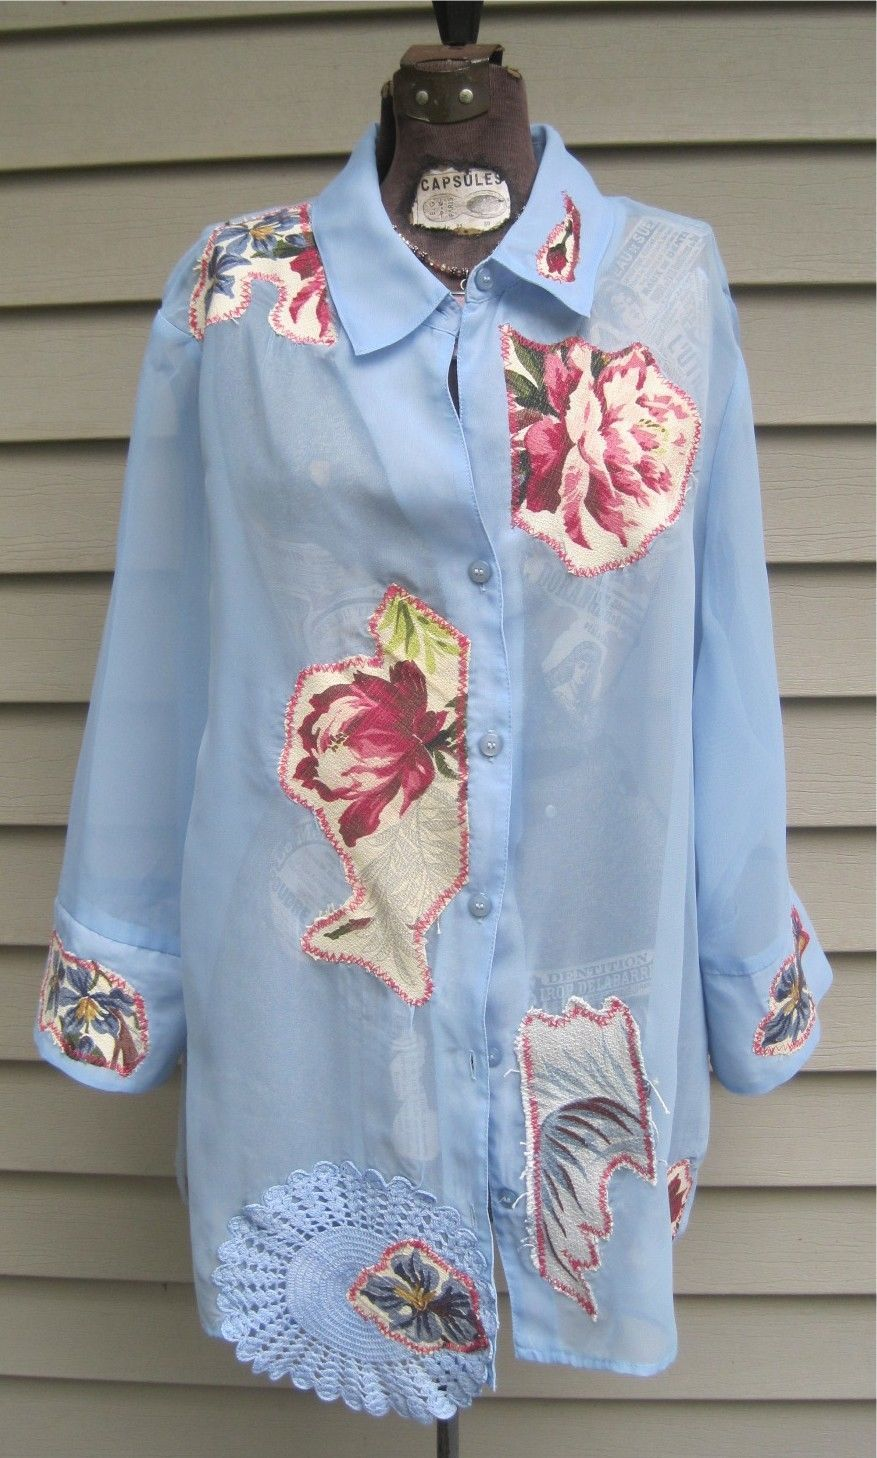 Recycled Women s 18W 20W Periwinkle Blue Chiffon Artsy Shabby Chic  Lagenlook Indie Peasant Blouse. Measures 31